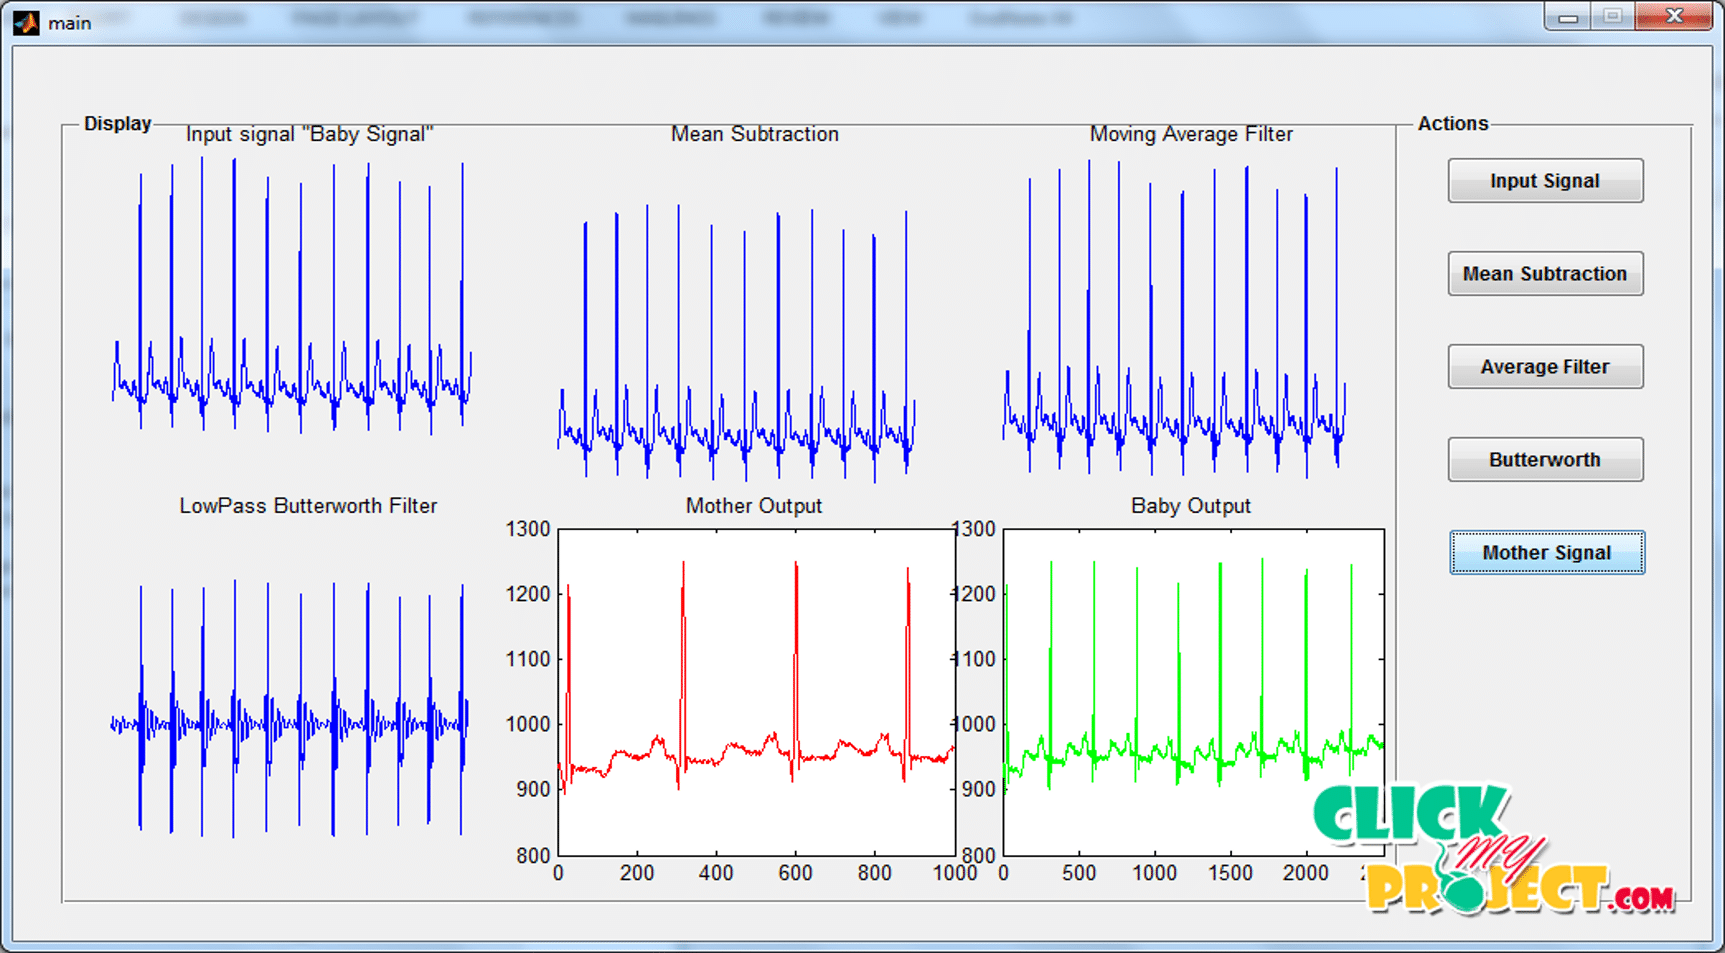 A New Method for Foetal Electrocardiogram Extraction Using Adaptive Nero-Fuzzy | 2015 Projects